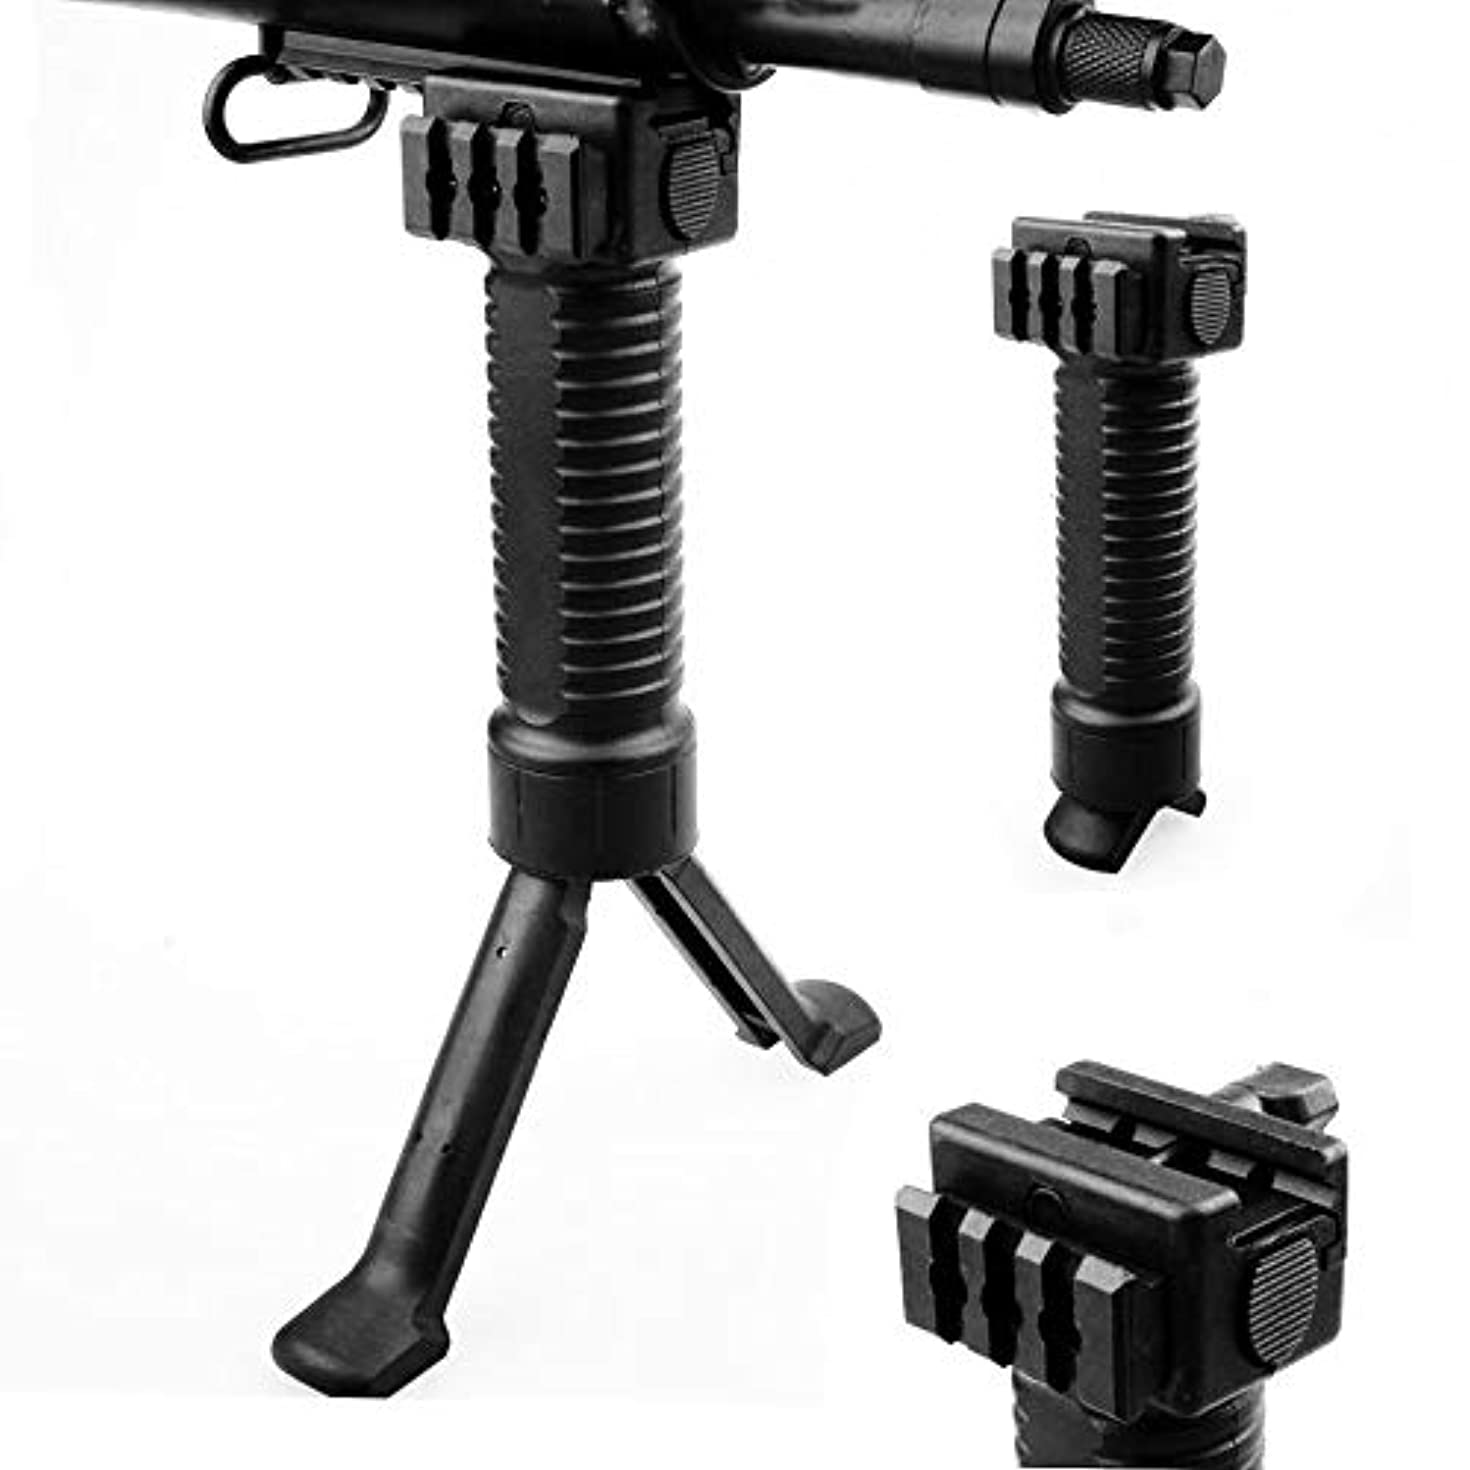 Toycamp Camera Grip Stabilizer Holder for Filming Accessories 20mm Length Guide Handle Mount for M4 Blaster